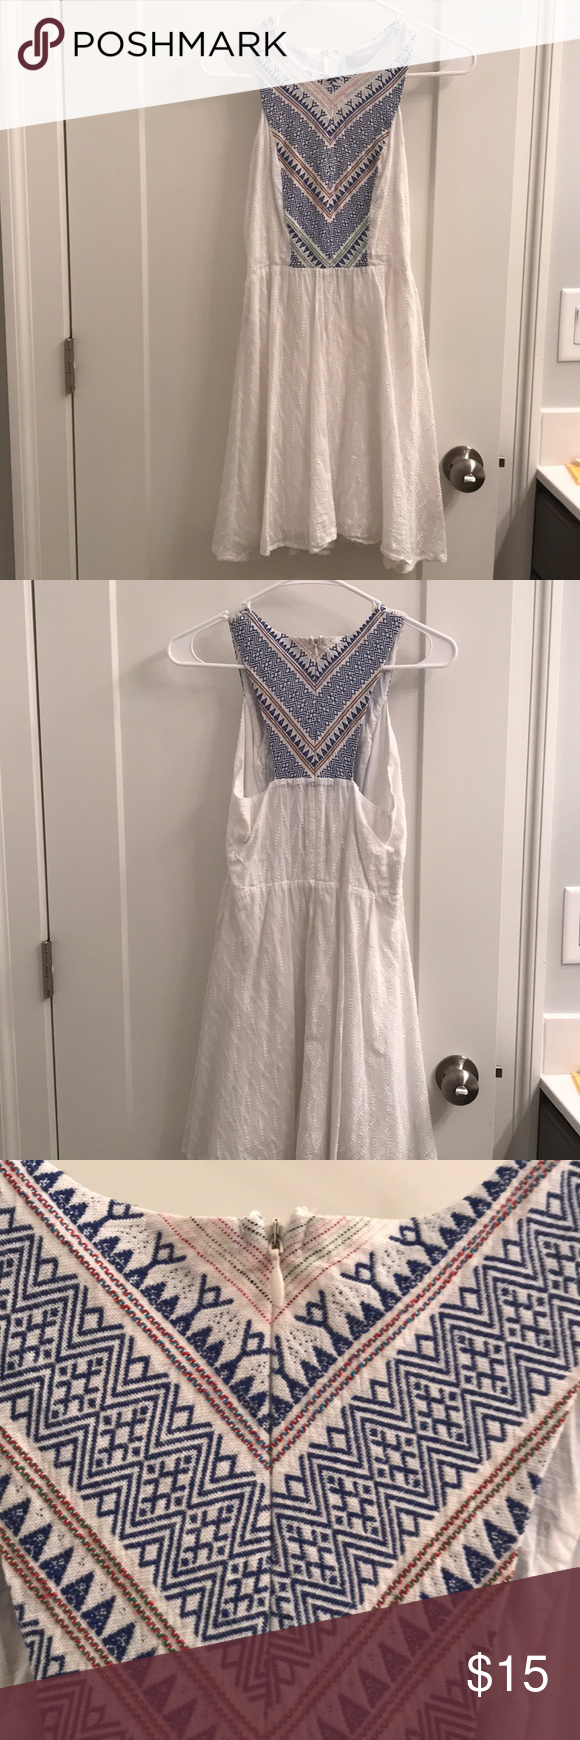 Lace Dress A Rotten Tomato Original with white lace and